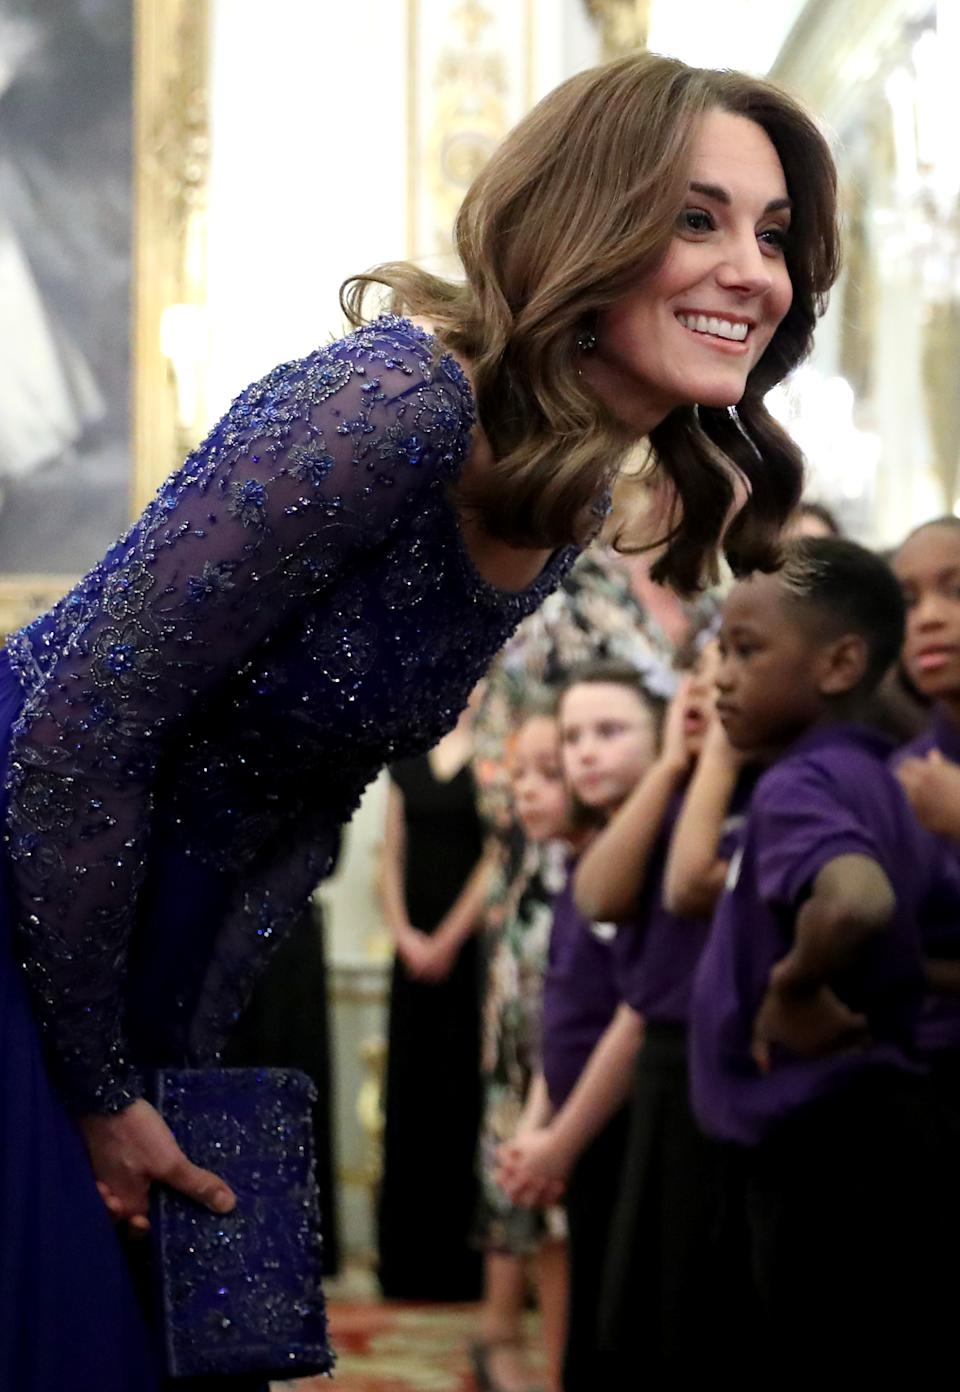 LONDON, ENGLAND - MARCH 09: Catherine, Duchess of Cambridge speaks with a school choir as she hosts a Gala Dinner in celebration of the 25th anniversary of Place2Be at Buckingham Palace on March 09, 2020 in London, England. The Duchess is Patron of Place2Be, which provides emotional support at an early age and believes no child should face mental health difficulties alone. (Photo by Chris Jackson - WPA Pool/Getty Images)